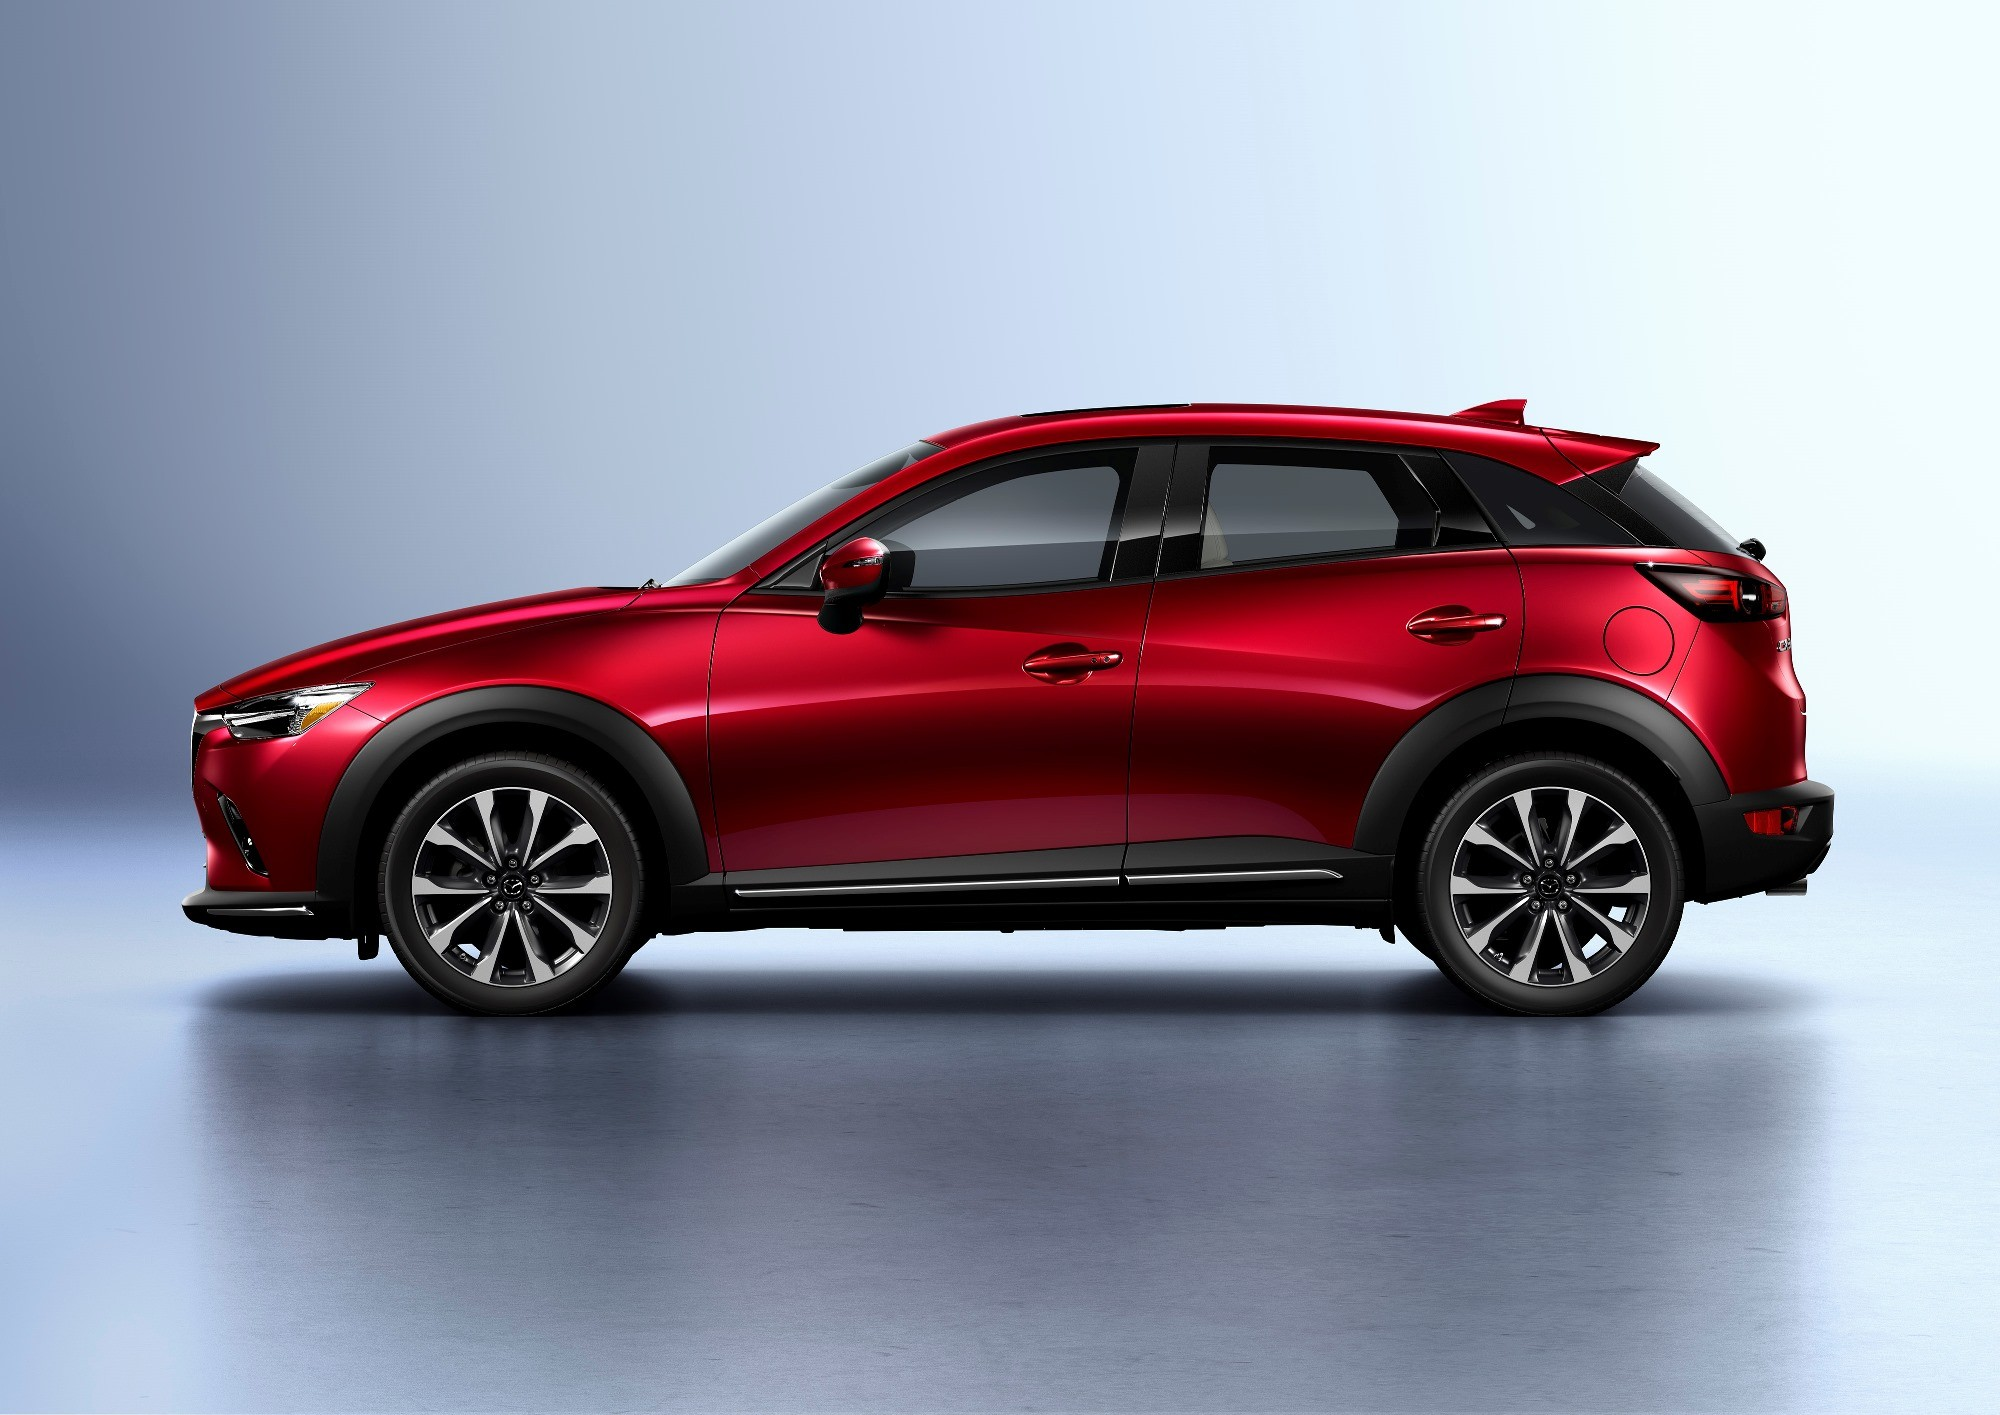 According To Mazda North American Operations The New Cx 3 Crossover Will Wear A Starting Price Tag Of 19 960 Msrp Without Including 880 Fee For